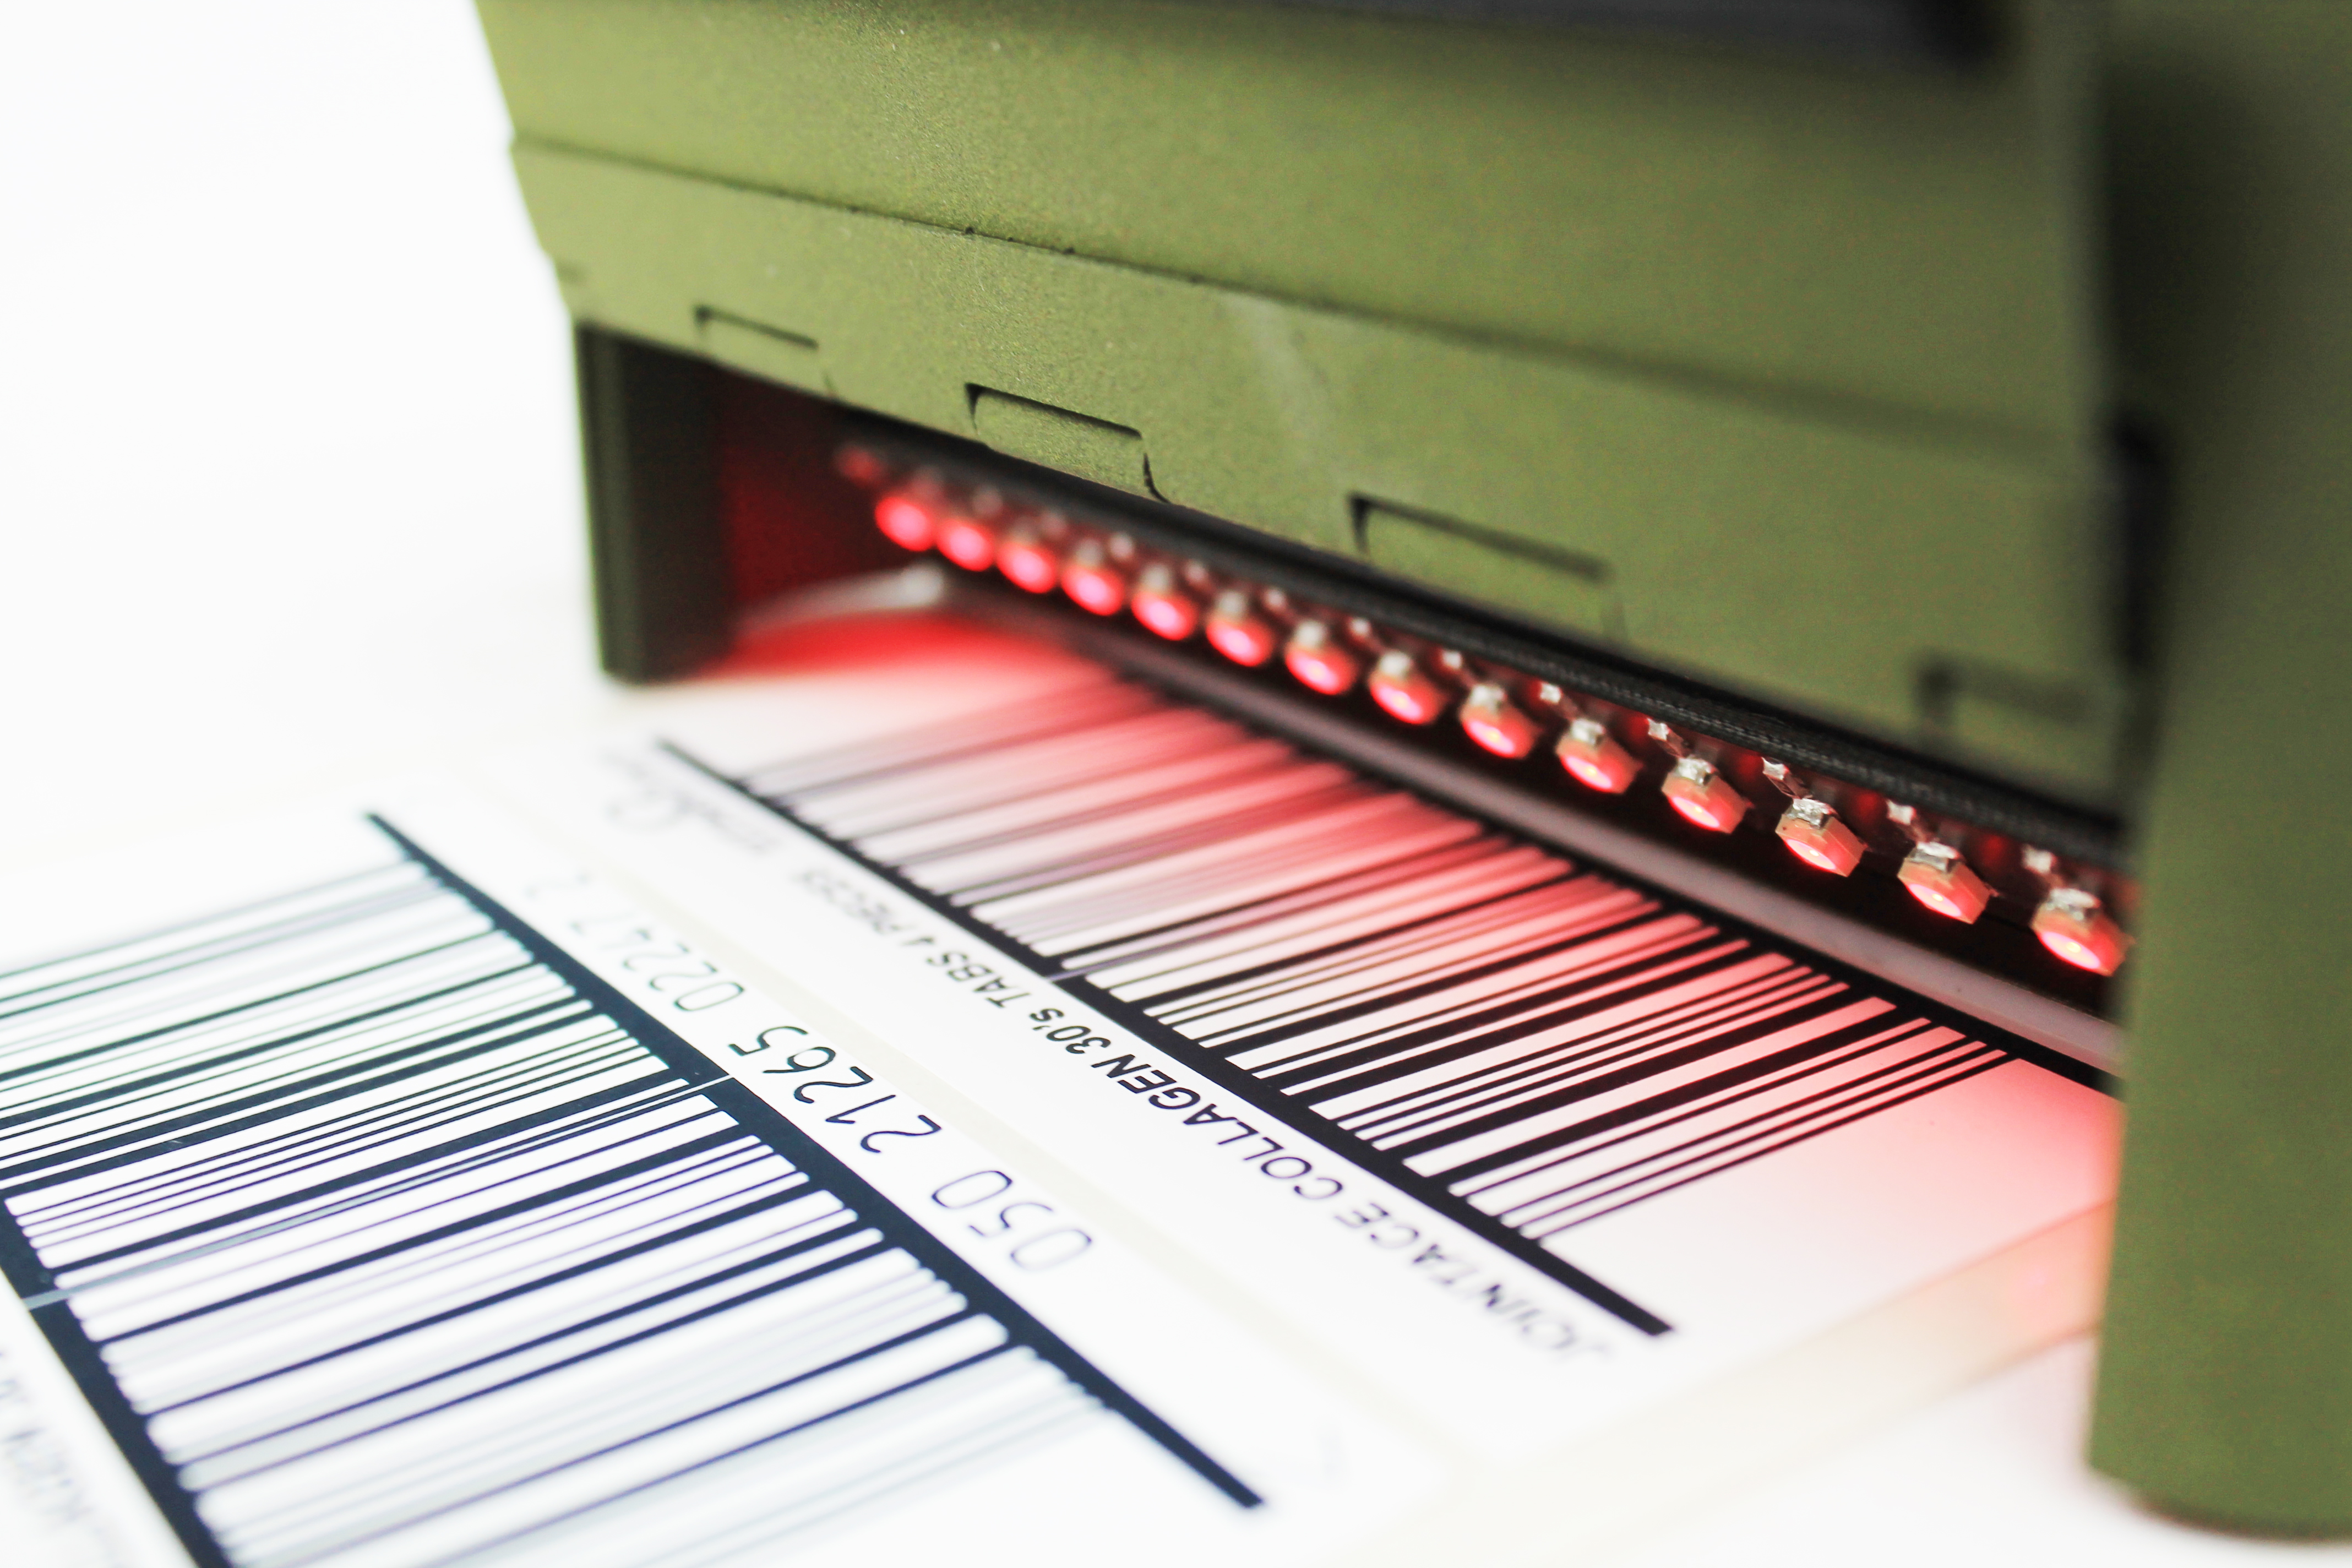 Barcode Verification the roi of barcode verification - barcode test